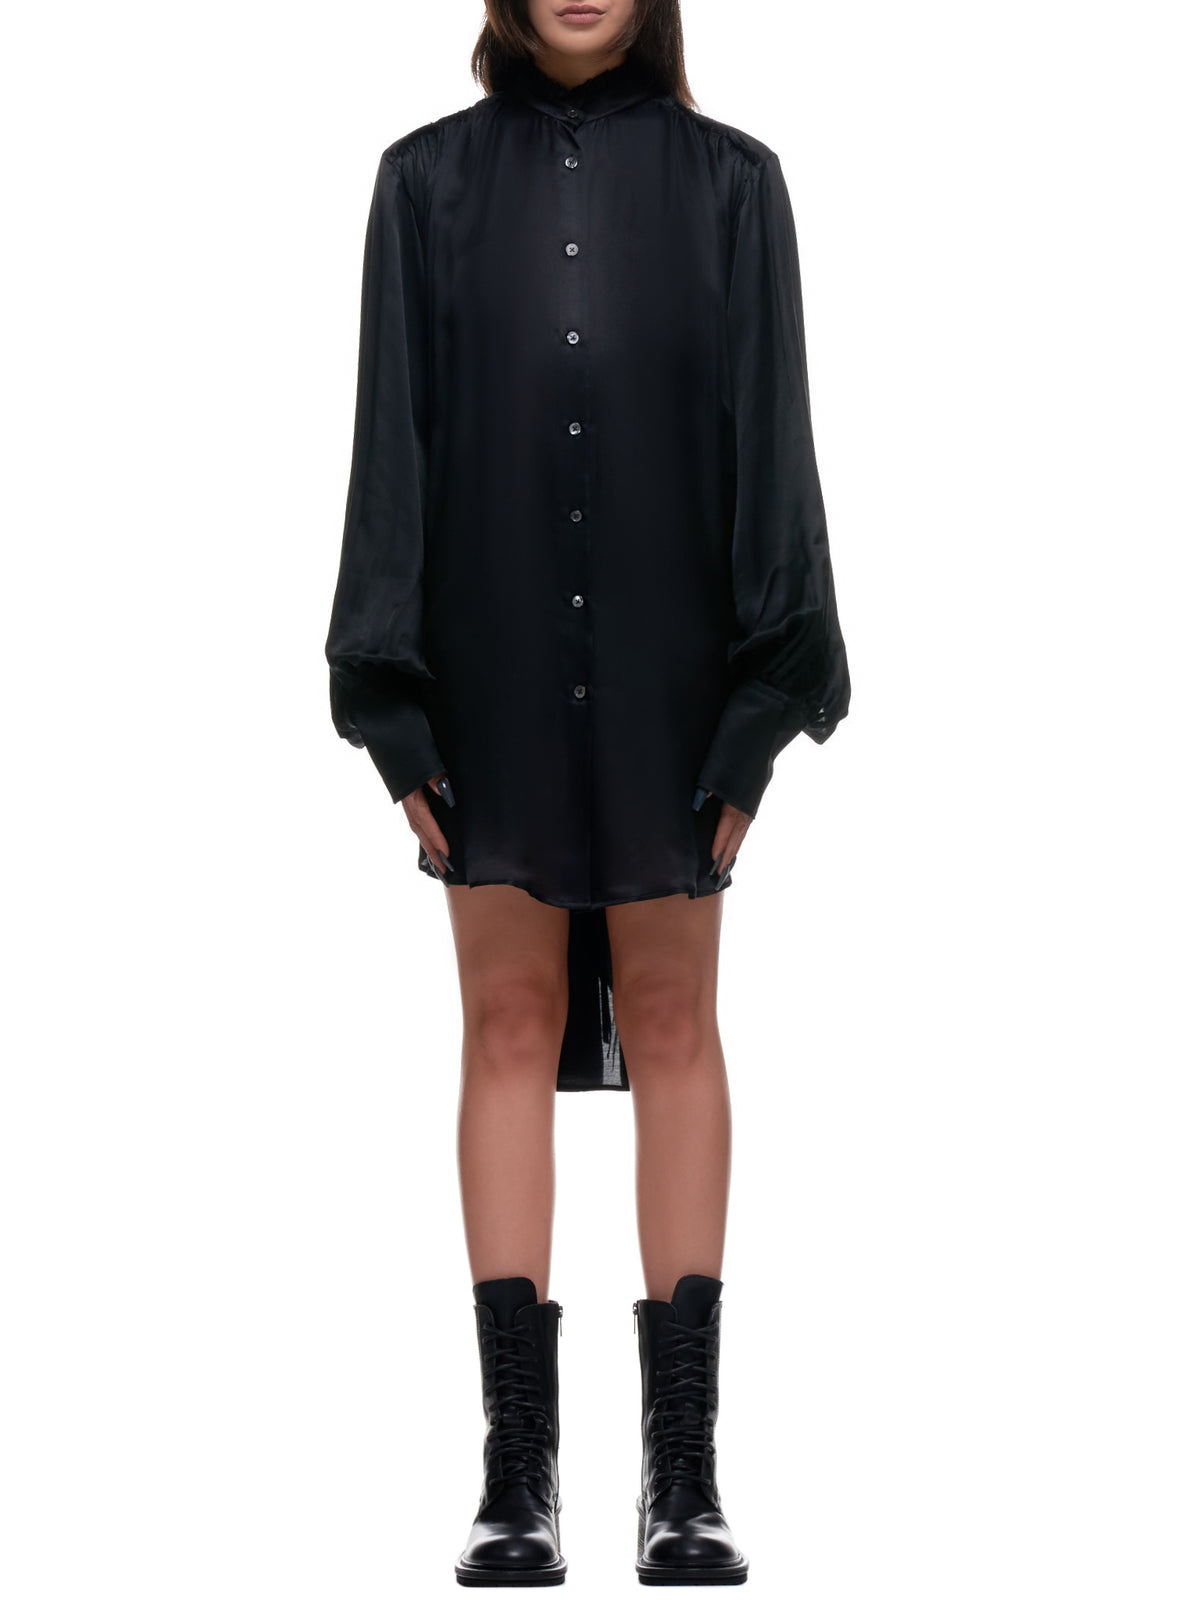 Nanette Shirtdress (2002-2014-P-122-099-BLACK)